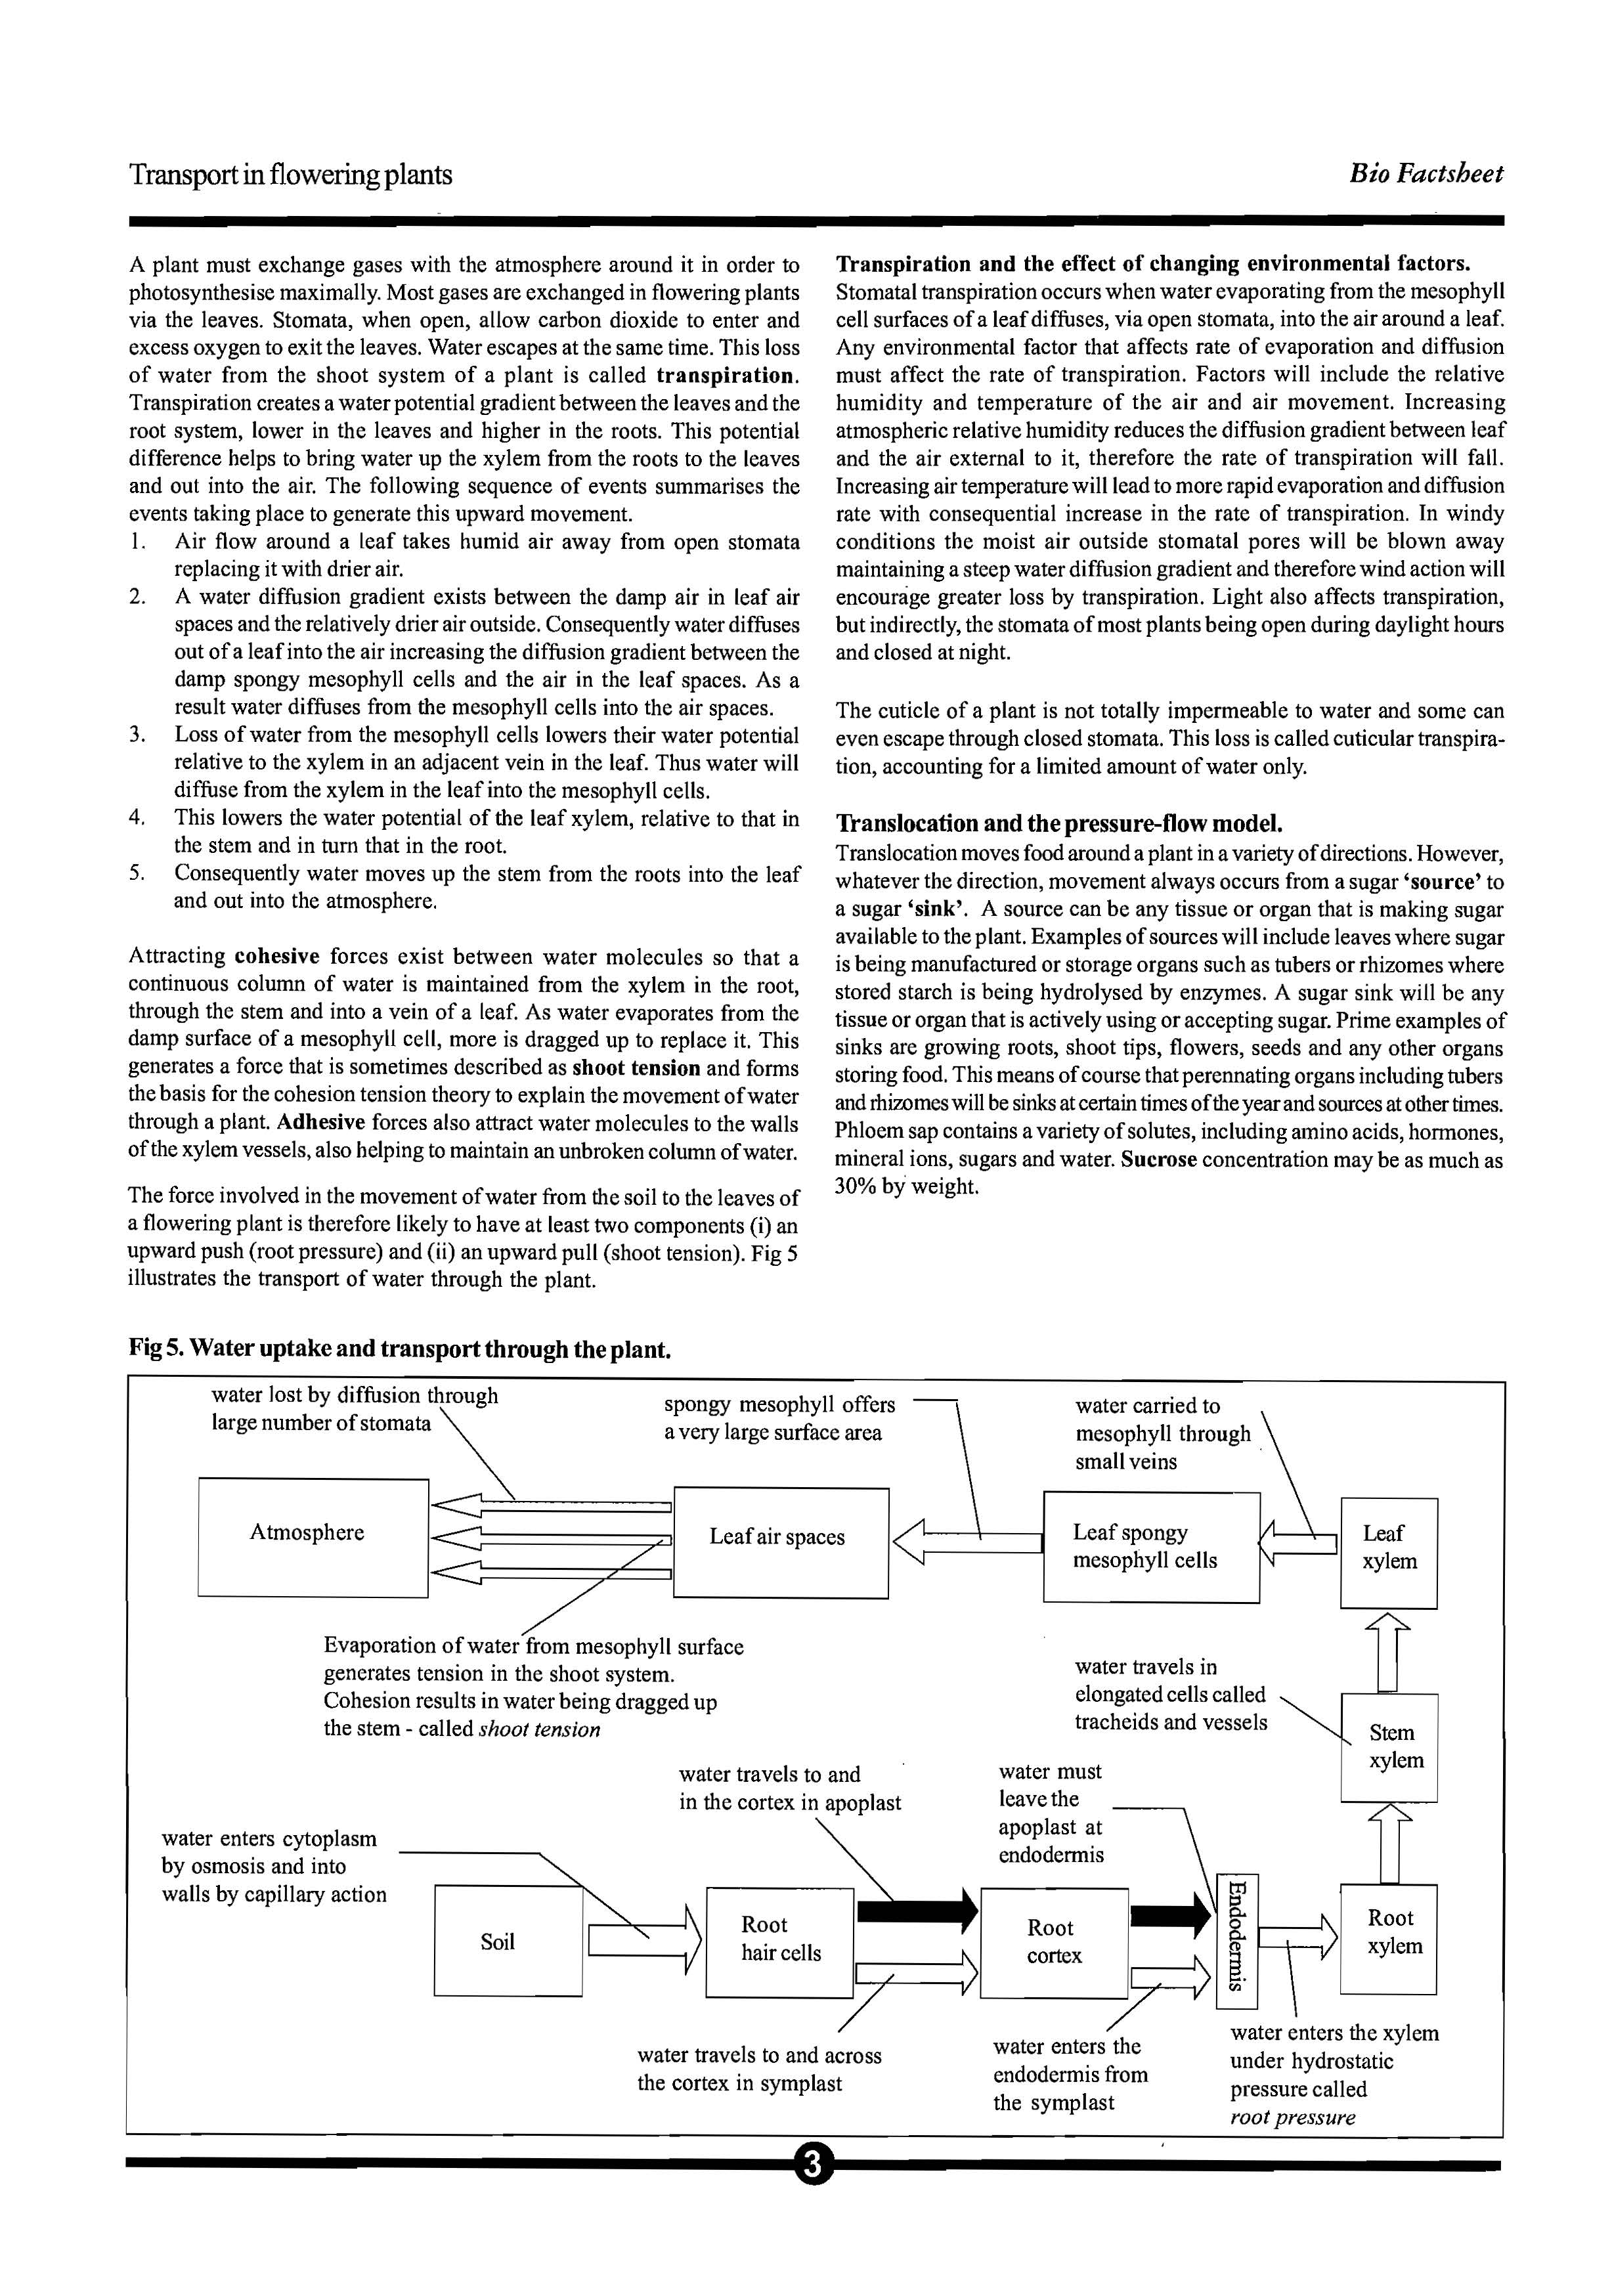 82 Transport in Flowering Plants_Page_3.jpg